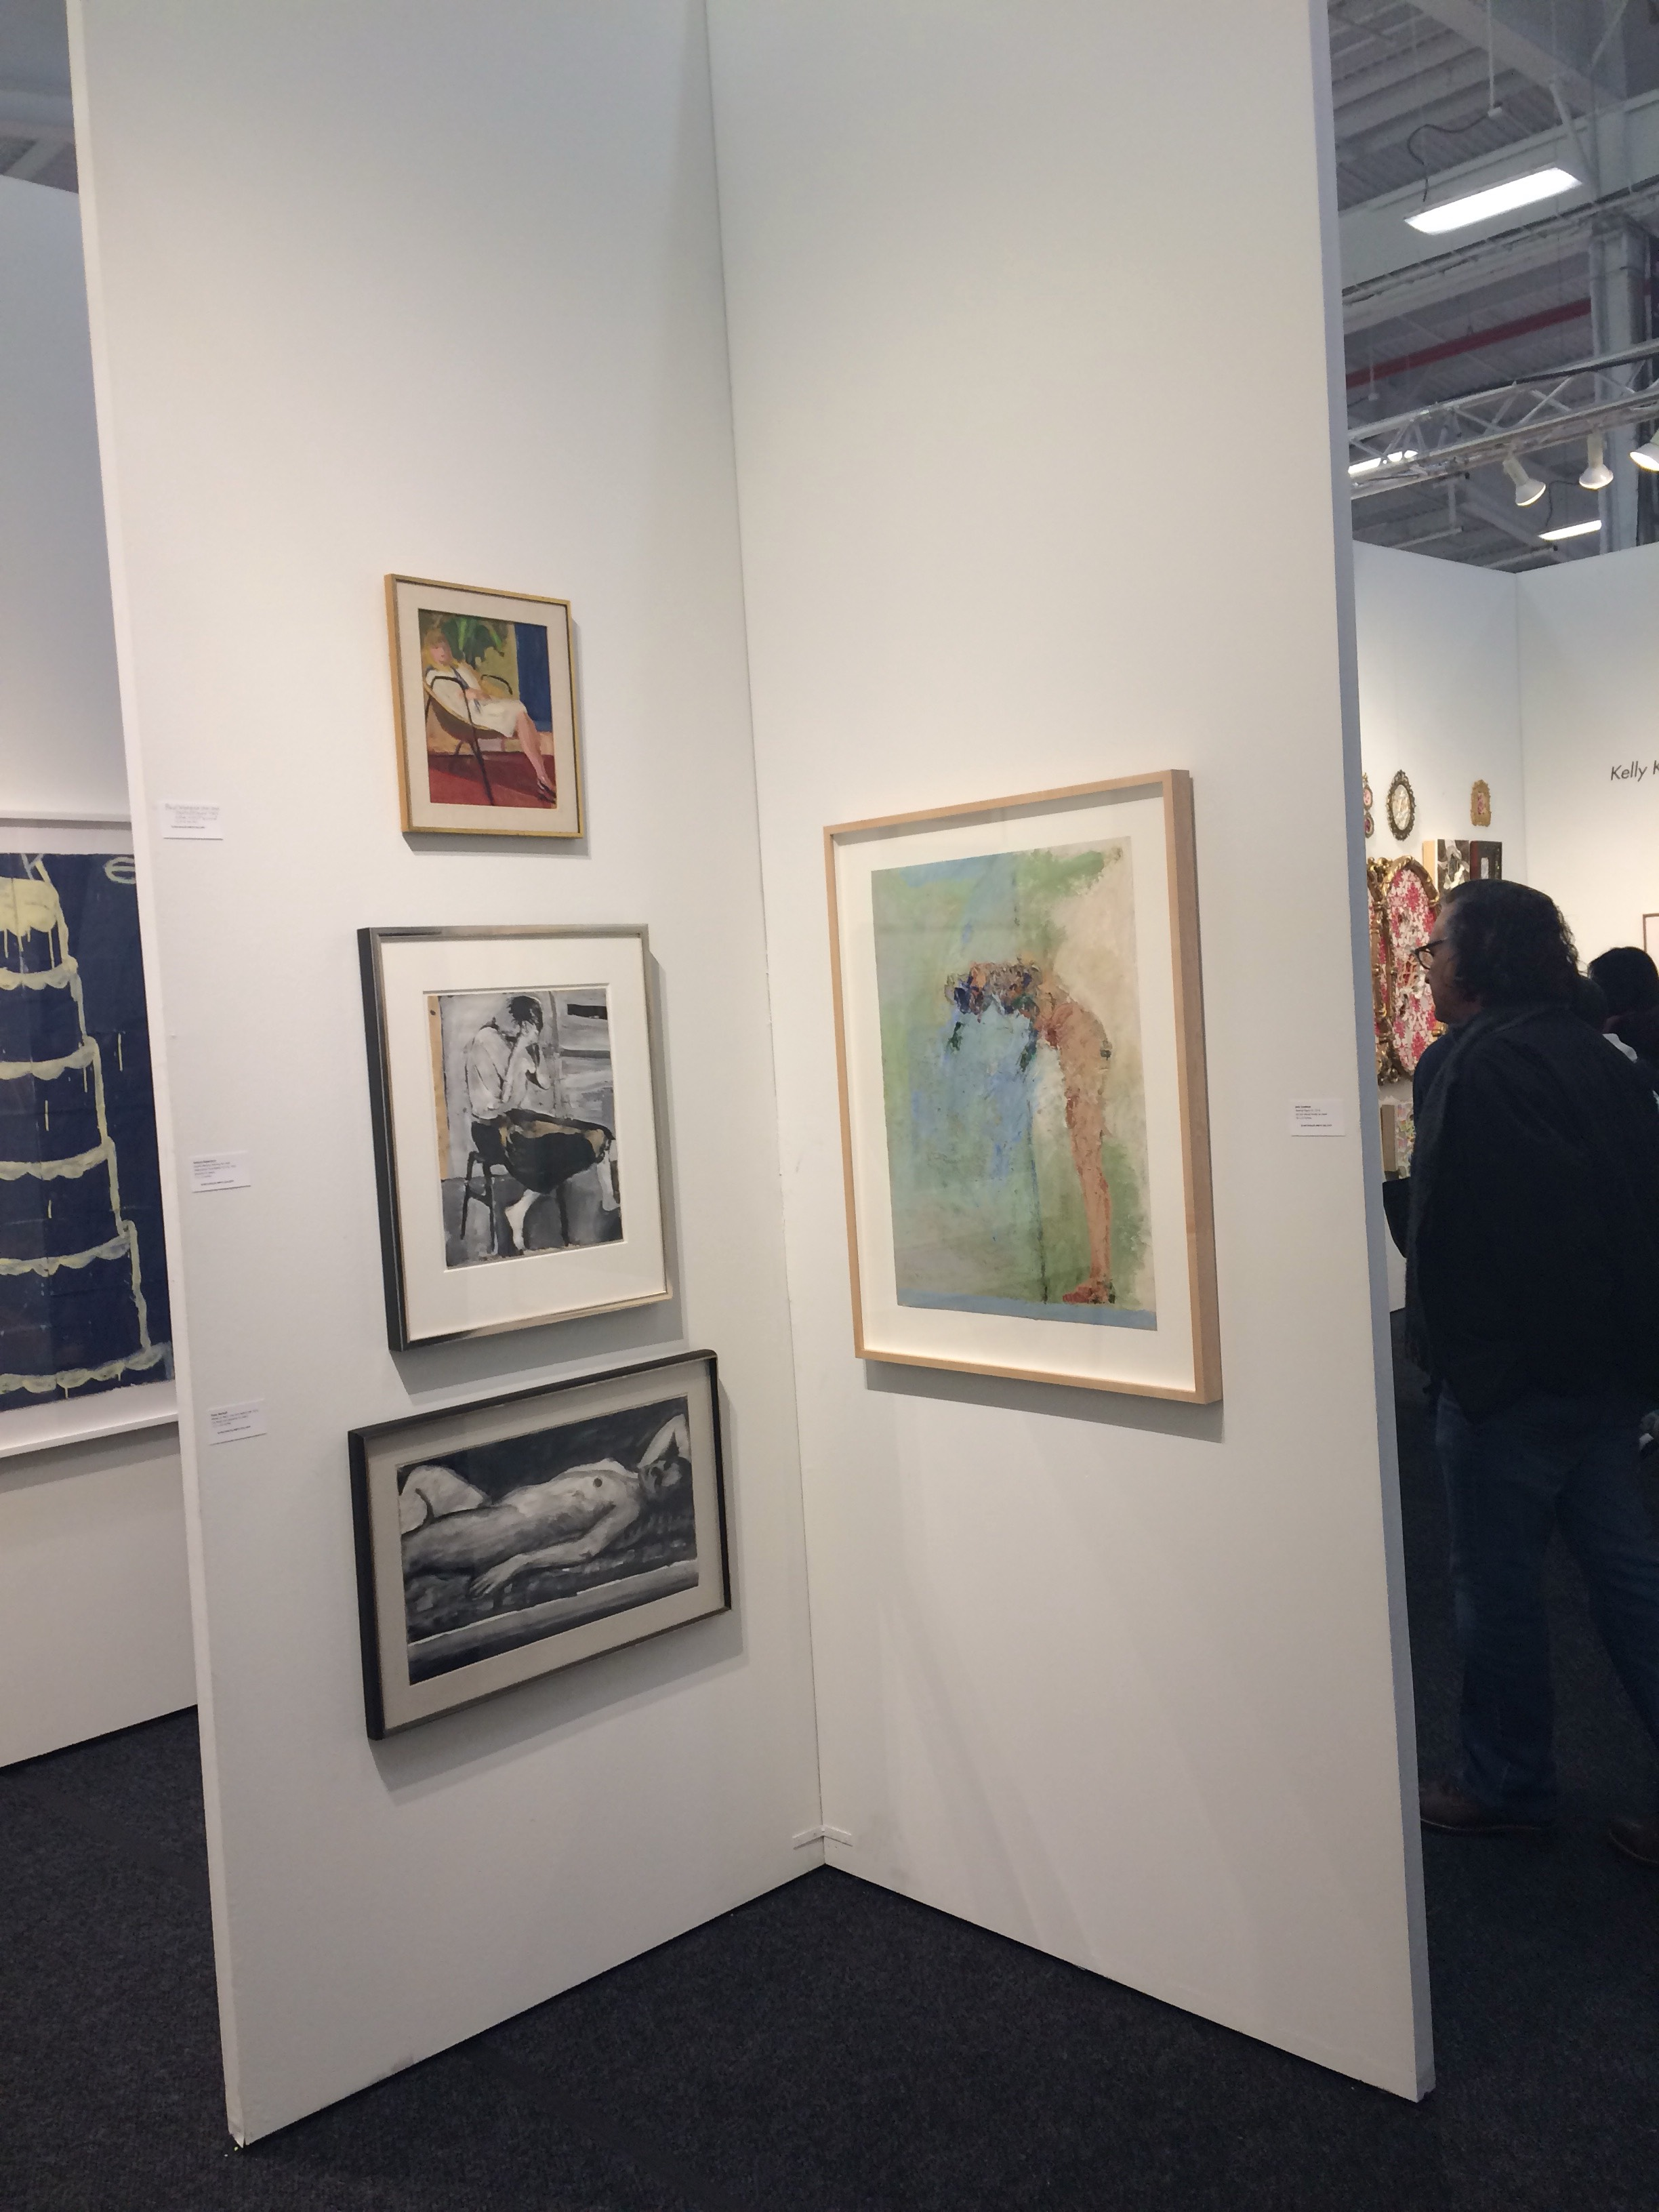 Art On PaperMARCH 2 - 52017 - Elins Eagles-Smith Gallery exhibiting atArt on Paper located at downtown Manhattan's Pier 36 March 2 - 5, 2017.An ArtMRKT production, Art on Paper's medium-driven focus lends itself to significant projects - unique moments that have set the fair apart and established a new and important destination for the arts in New York City.